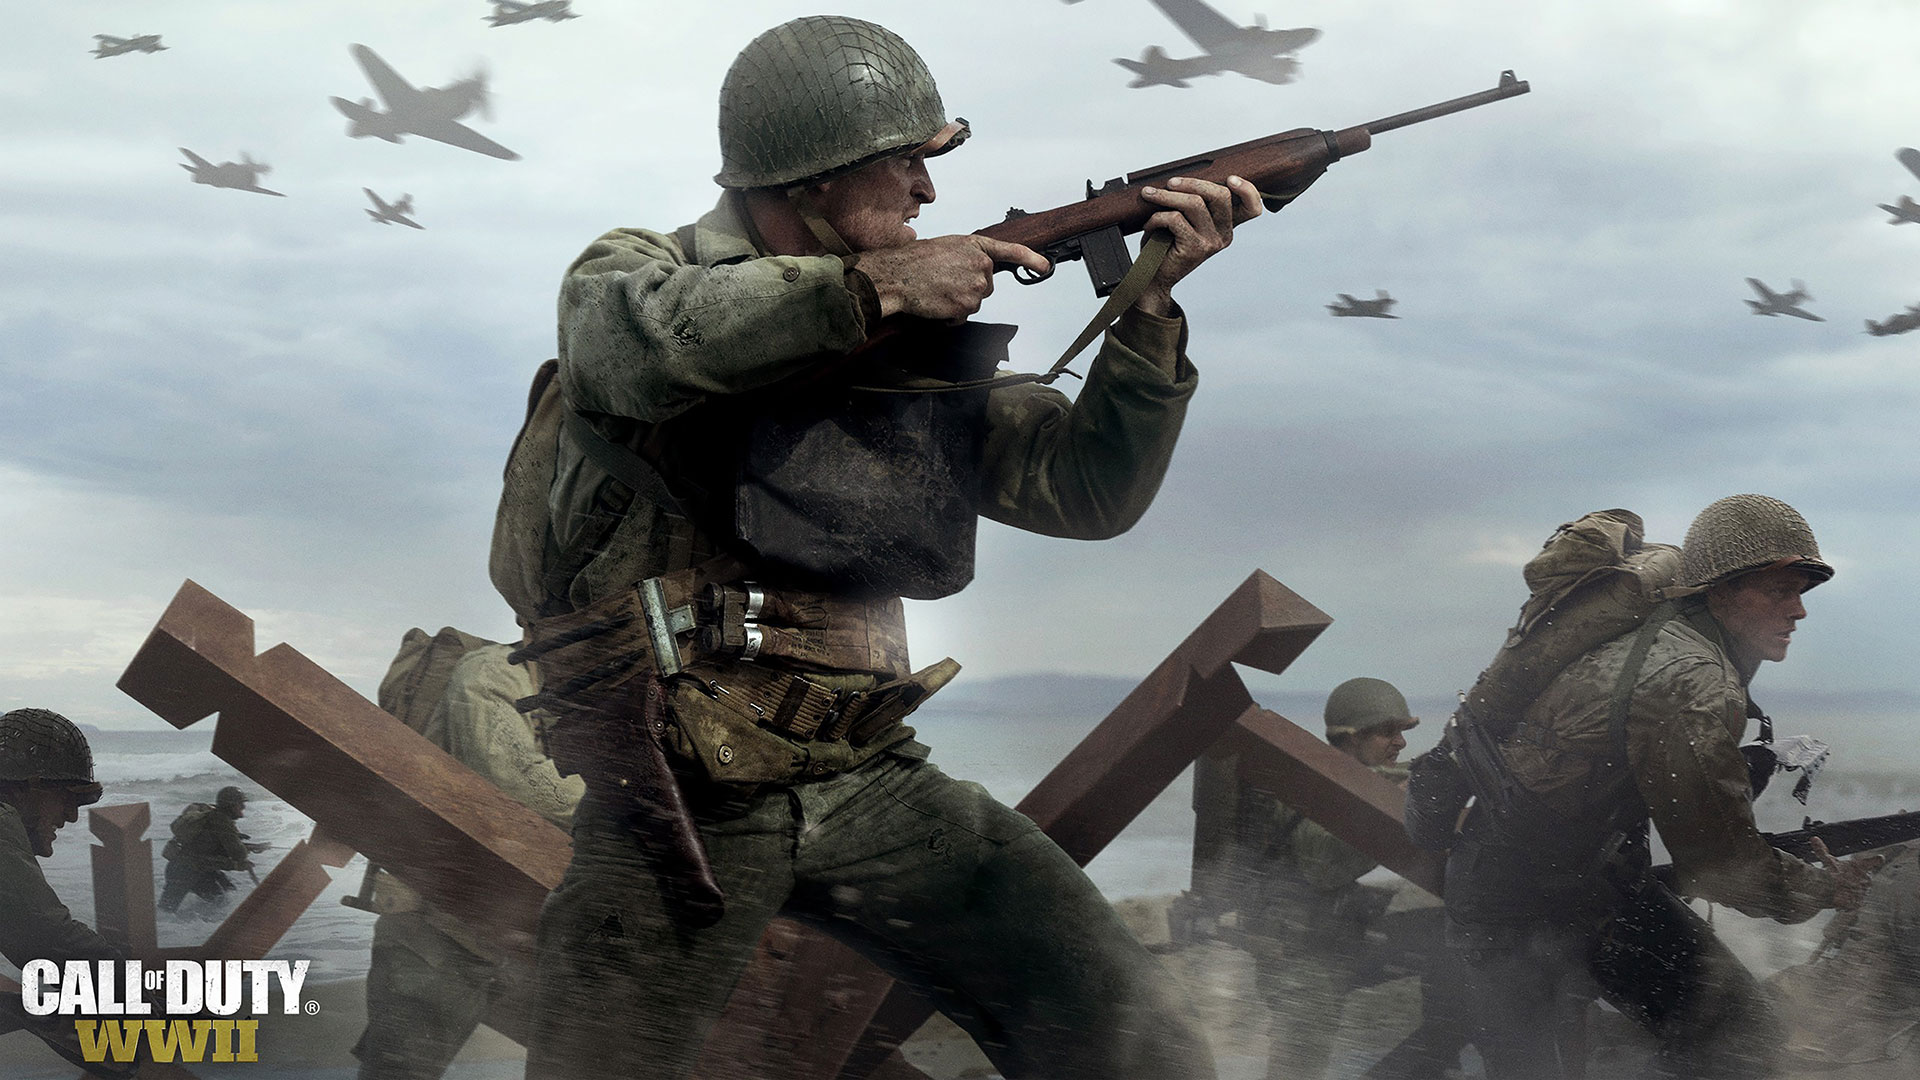 Initial Call of Duty: WWII Sales Figures Revealed